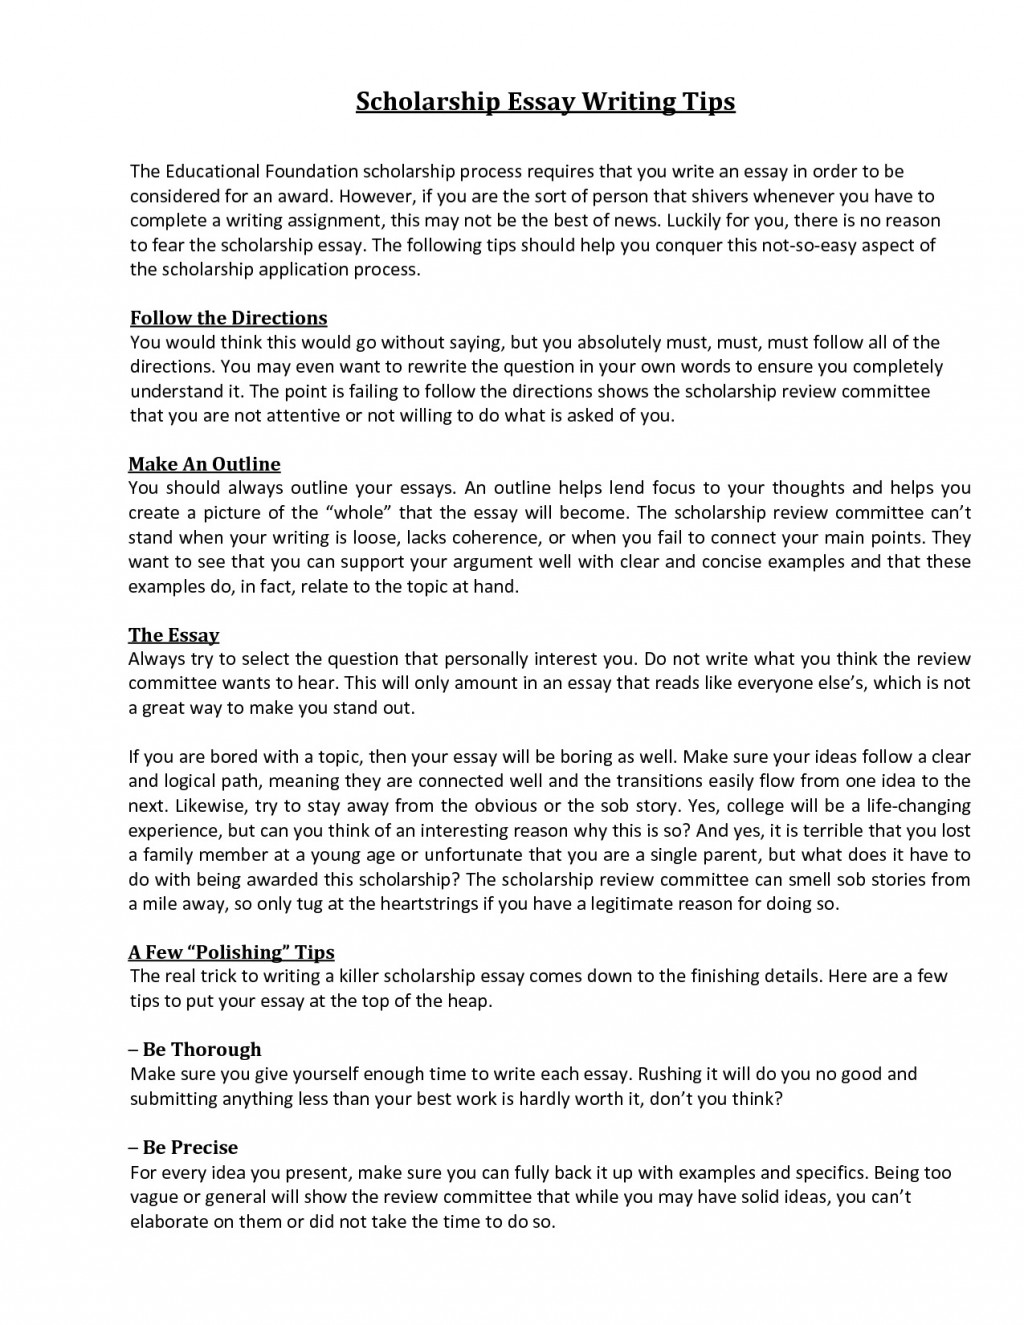 015 Scholarships With Essays Scholarship For College Custom Writing Company Regarding Essay Format Sample Singular Without High School Juniors Class Of 2020 No 2019 Large